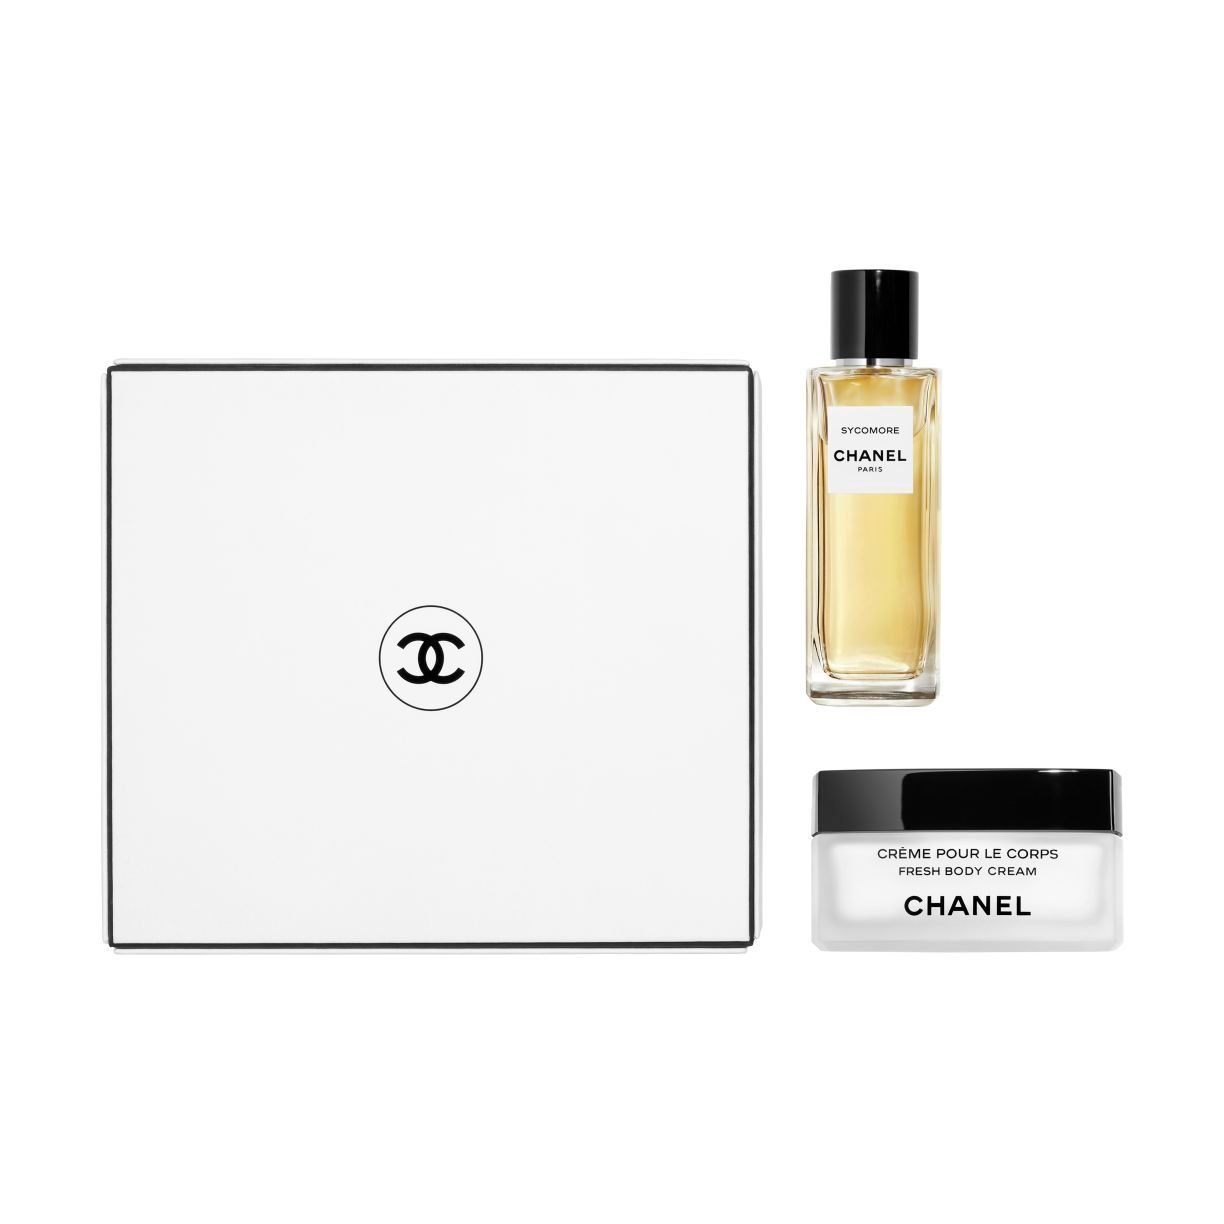 LES EXCLUSIFS DE CHANEL SYCOMORE EAU DE PARFUM 75 ML AND FRESH BODY CREAM COFFRET